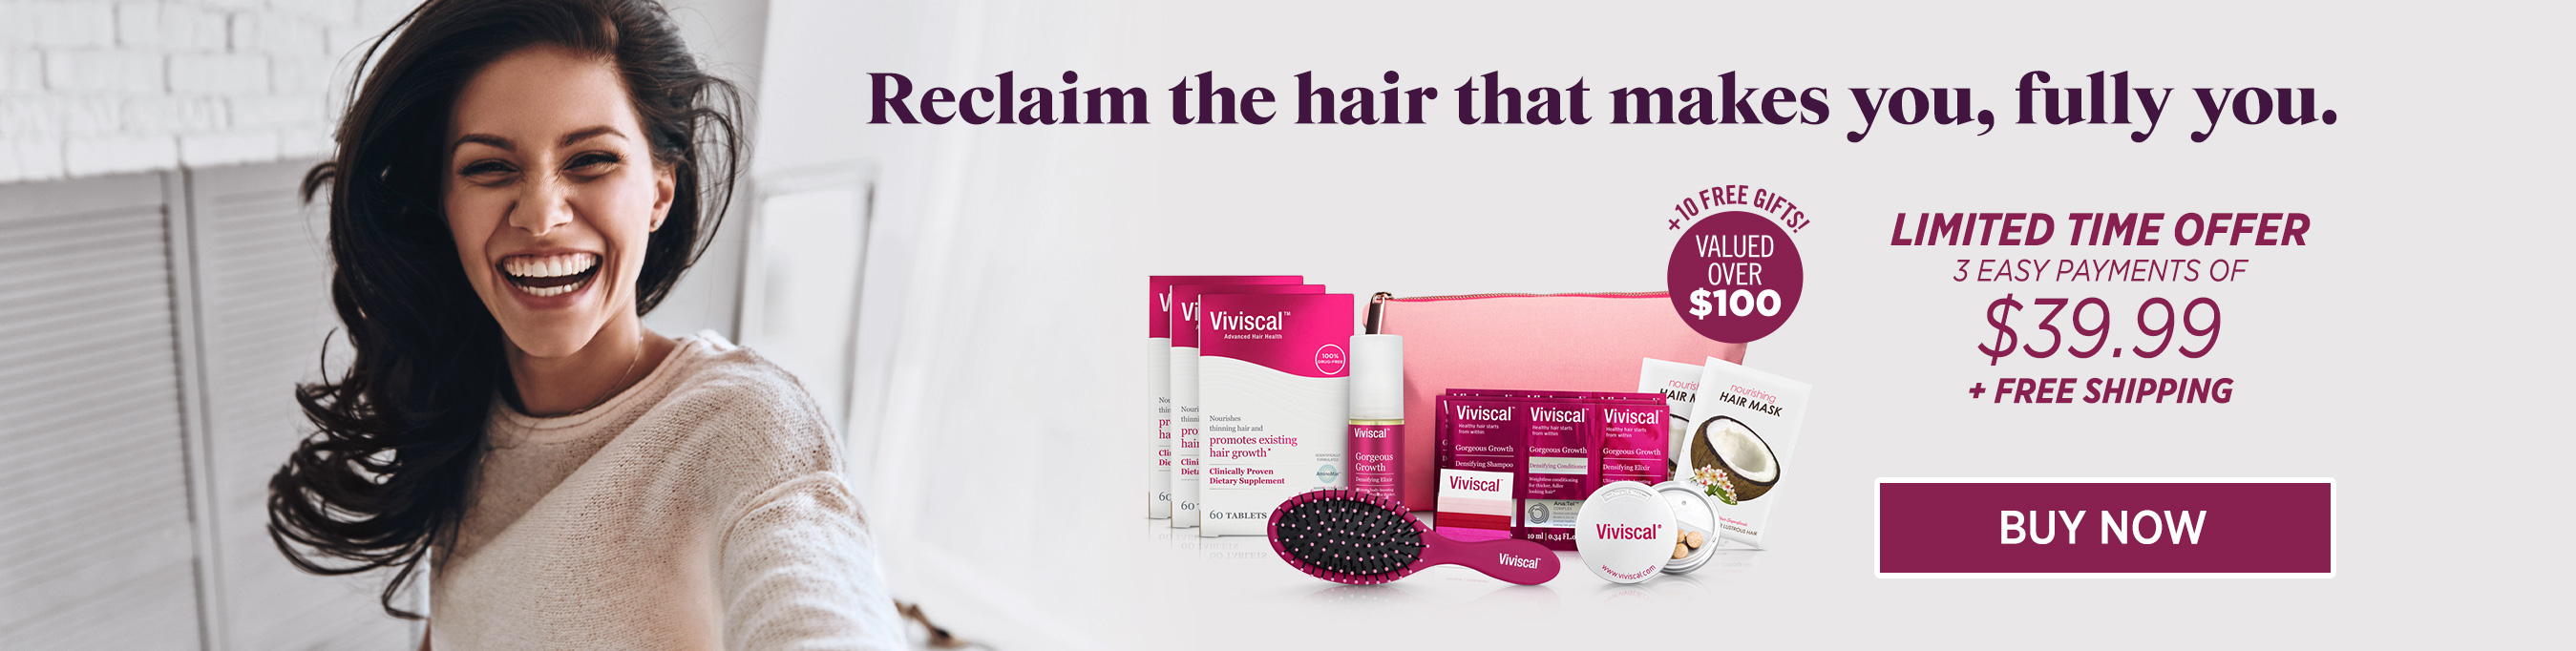 Molly Sims with Viviscal User Kit + 10 free gift kits, valued over $100 with 3 payments of $39.99 + free shipping